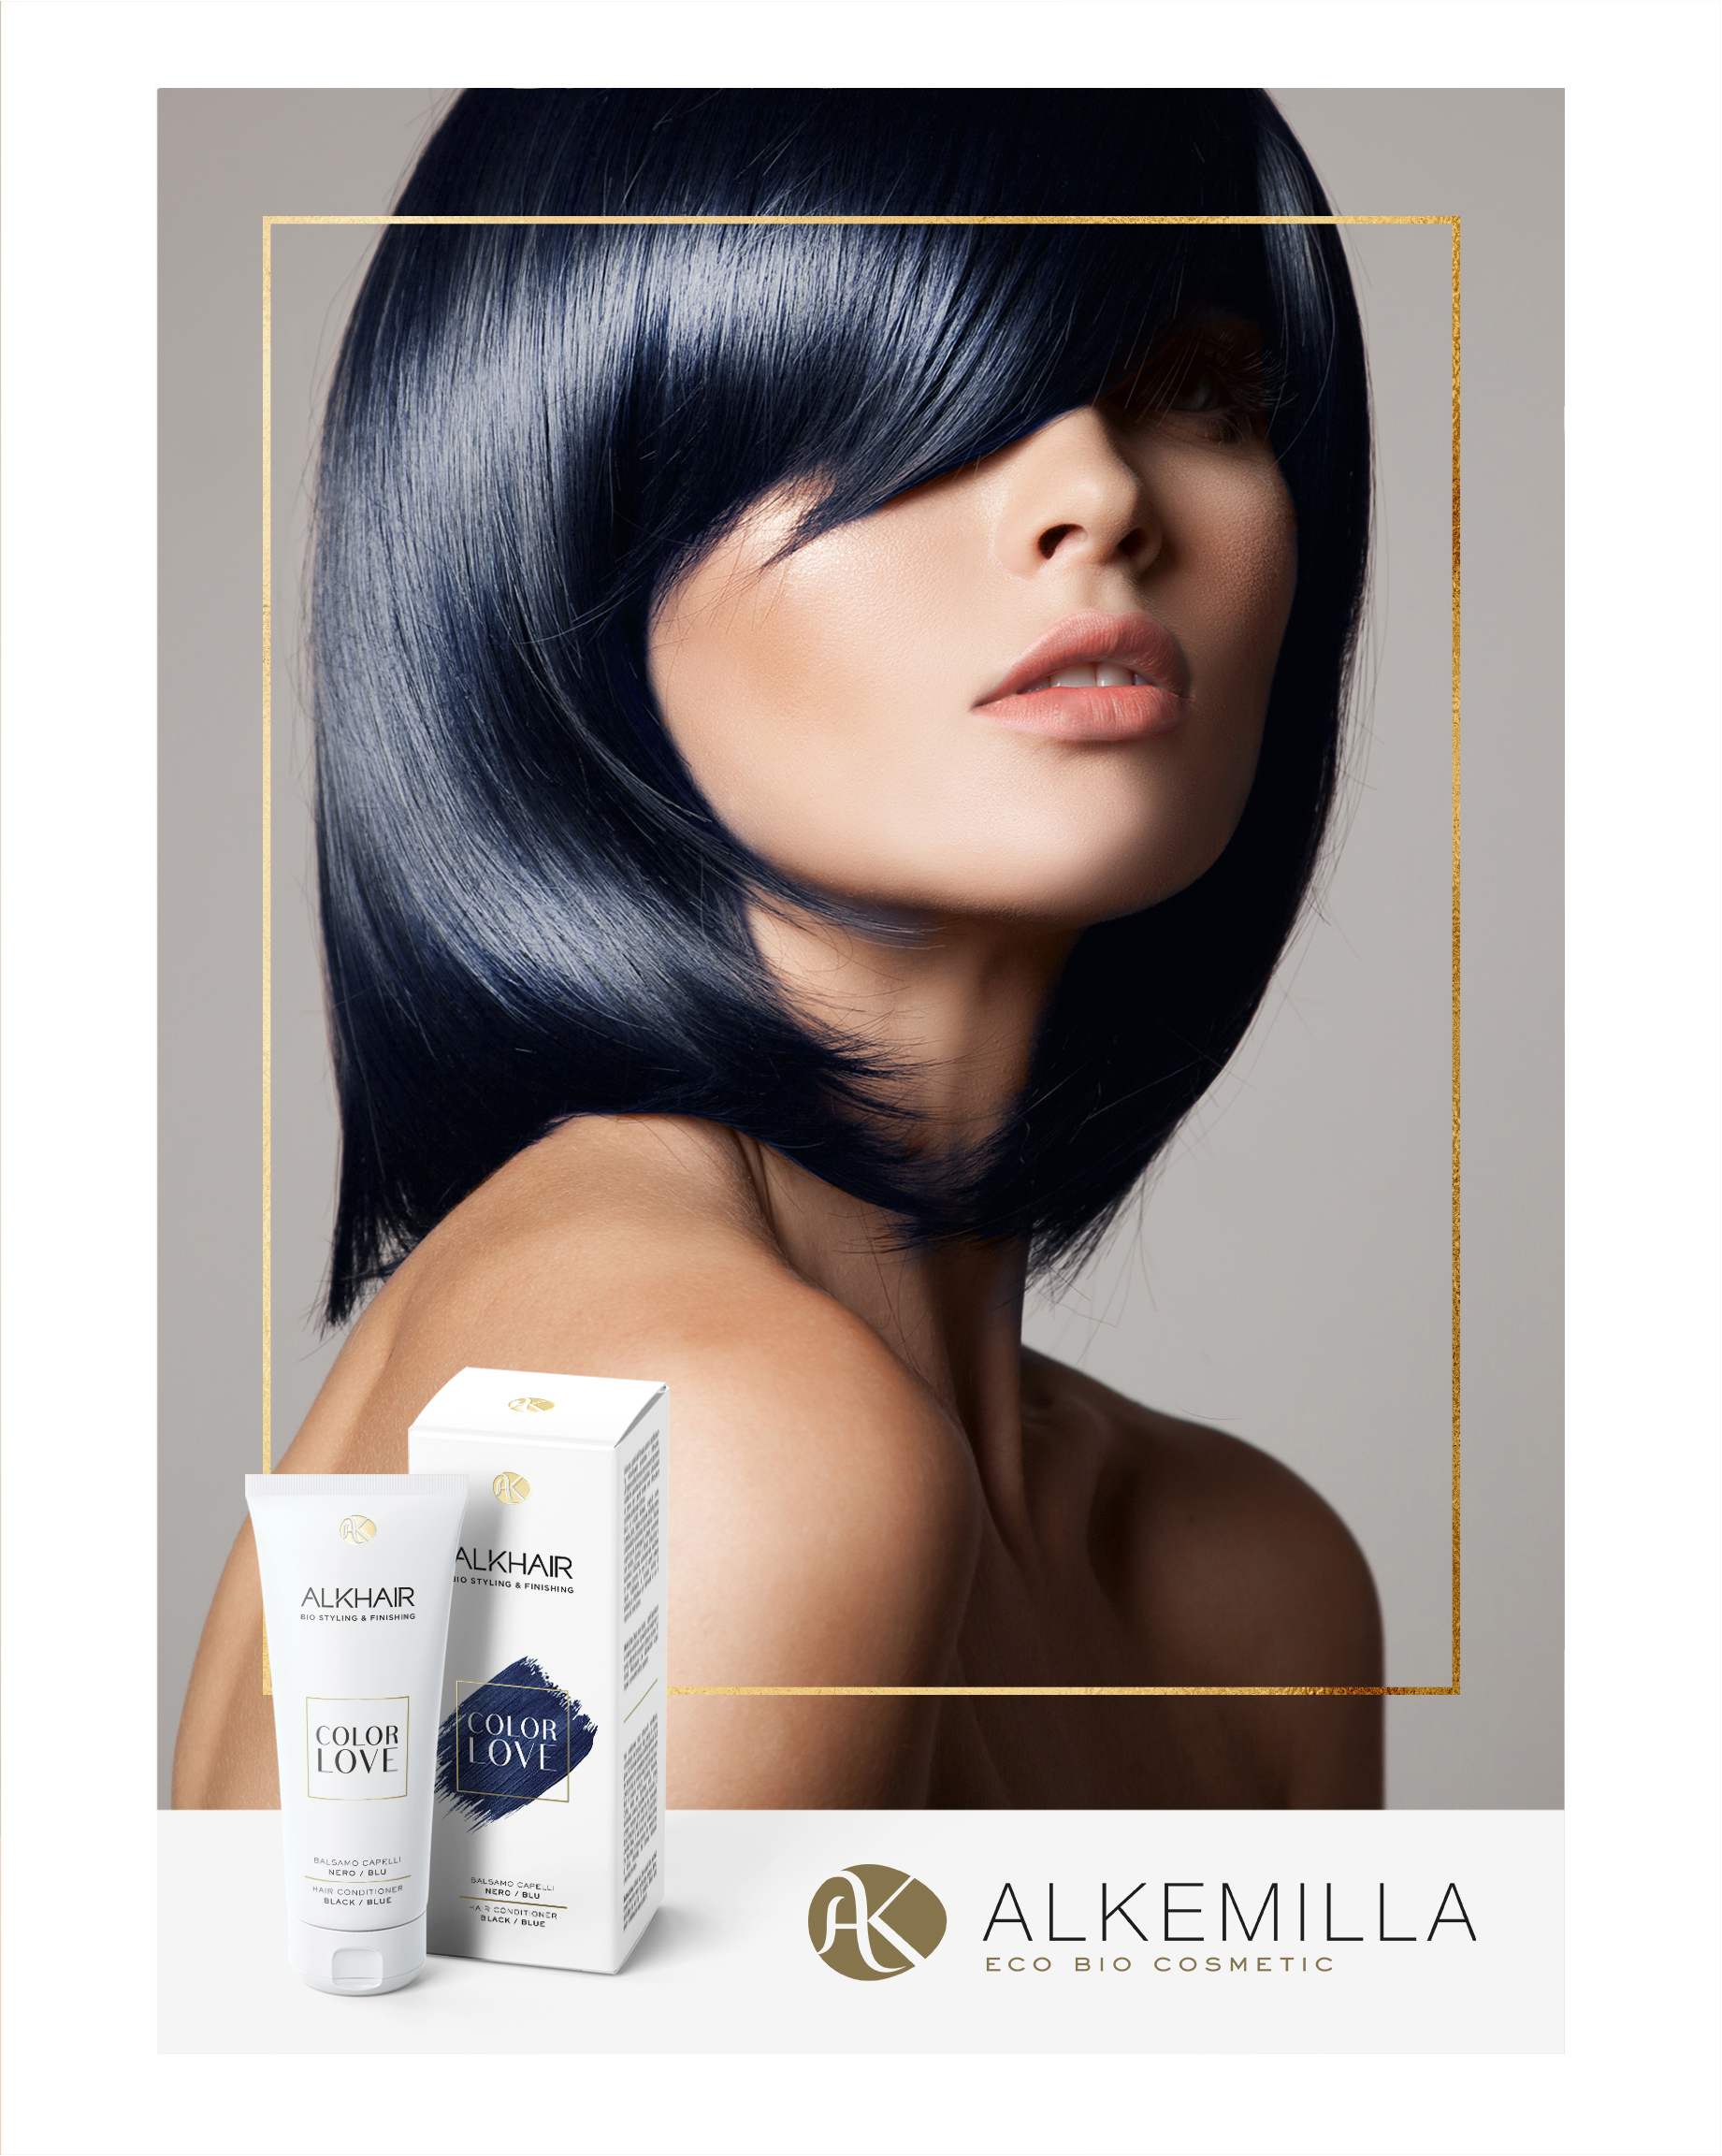 Alkhair Color Love ADV